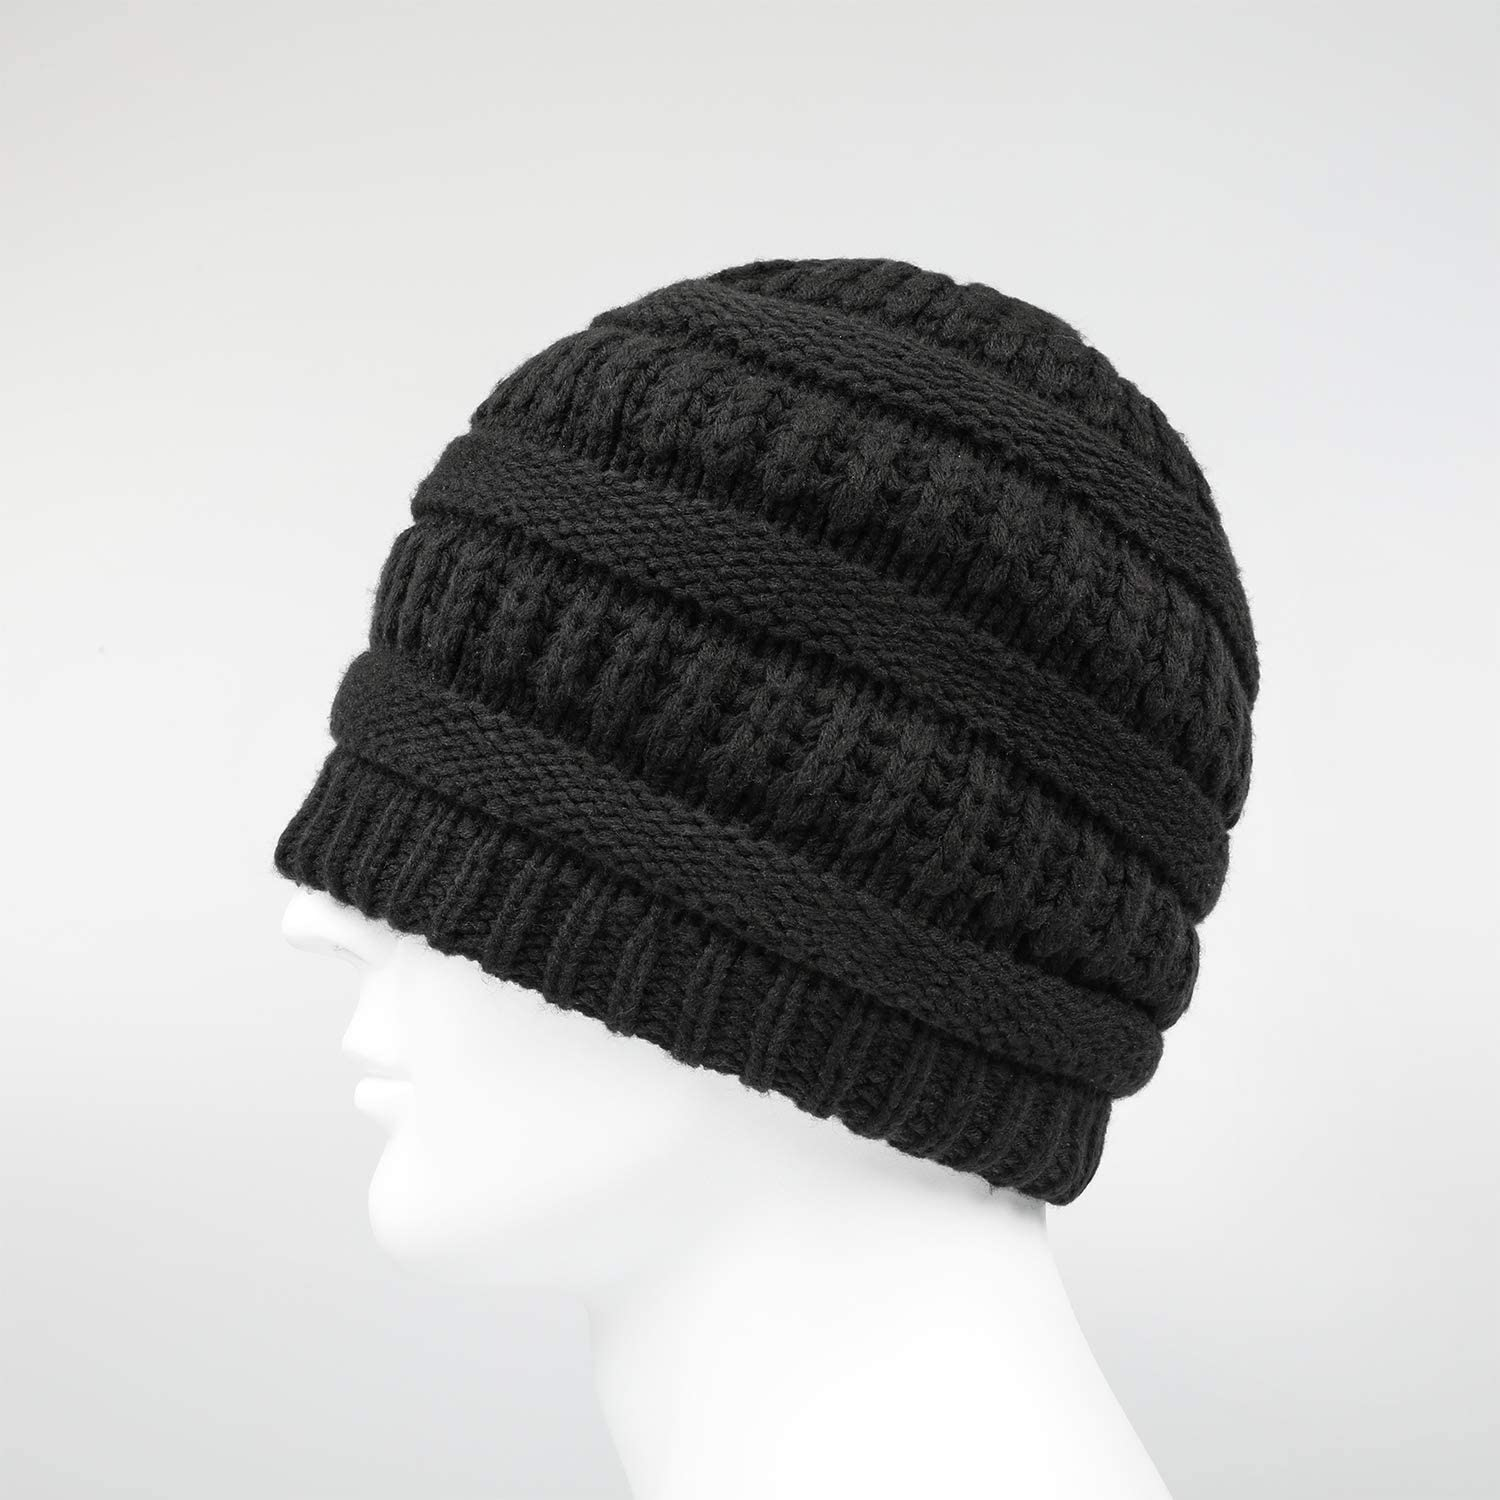 Layer Black Skull Cap Cold Weather Thick Daily Warm Hats Beanie for Men Winter Knit Beanie Hat for Women